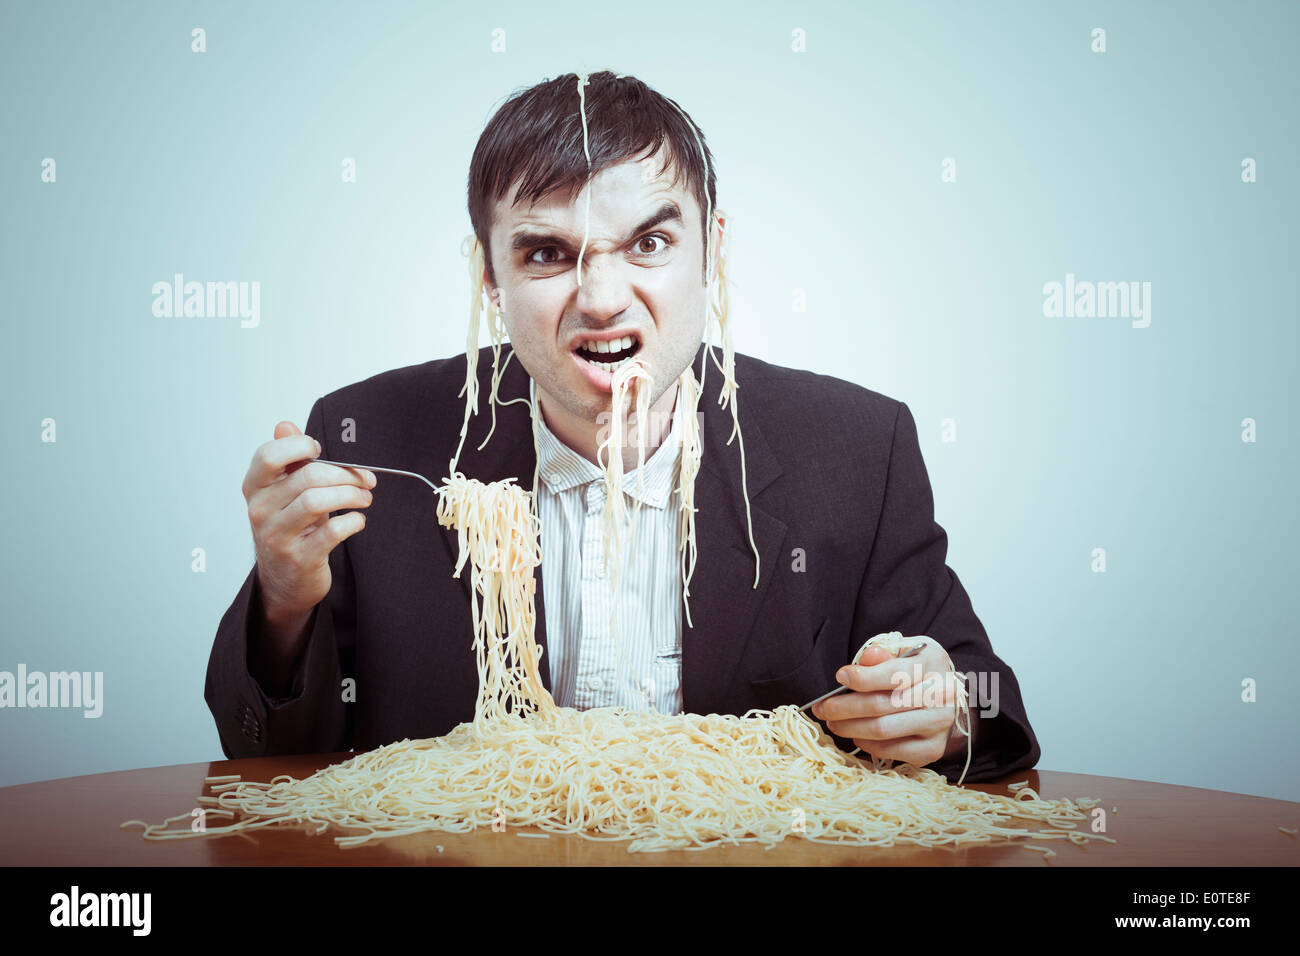 Greedy consumerism concept. Nasty businessman eating pasta on the table. - Stock Image